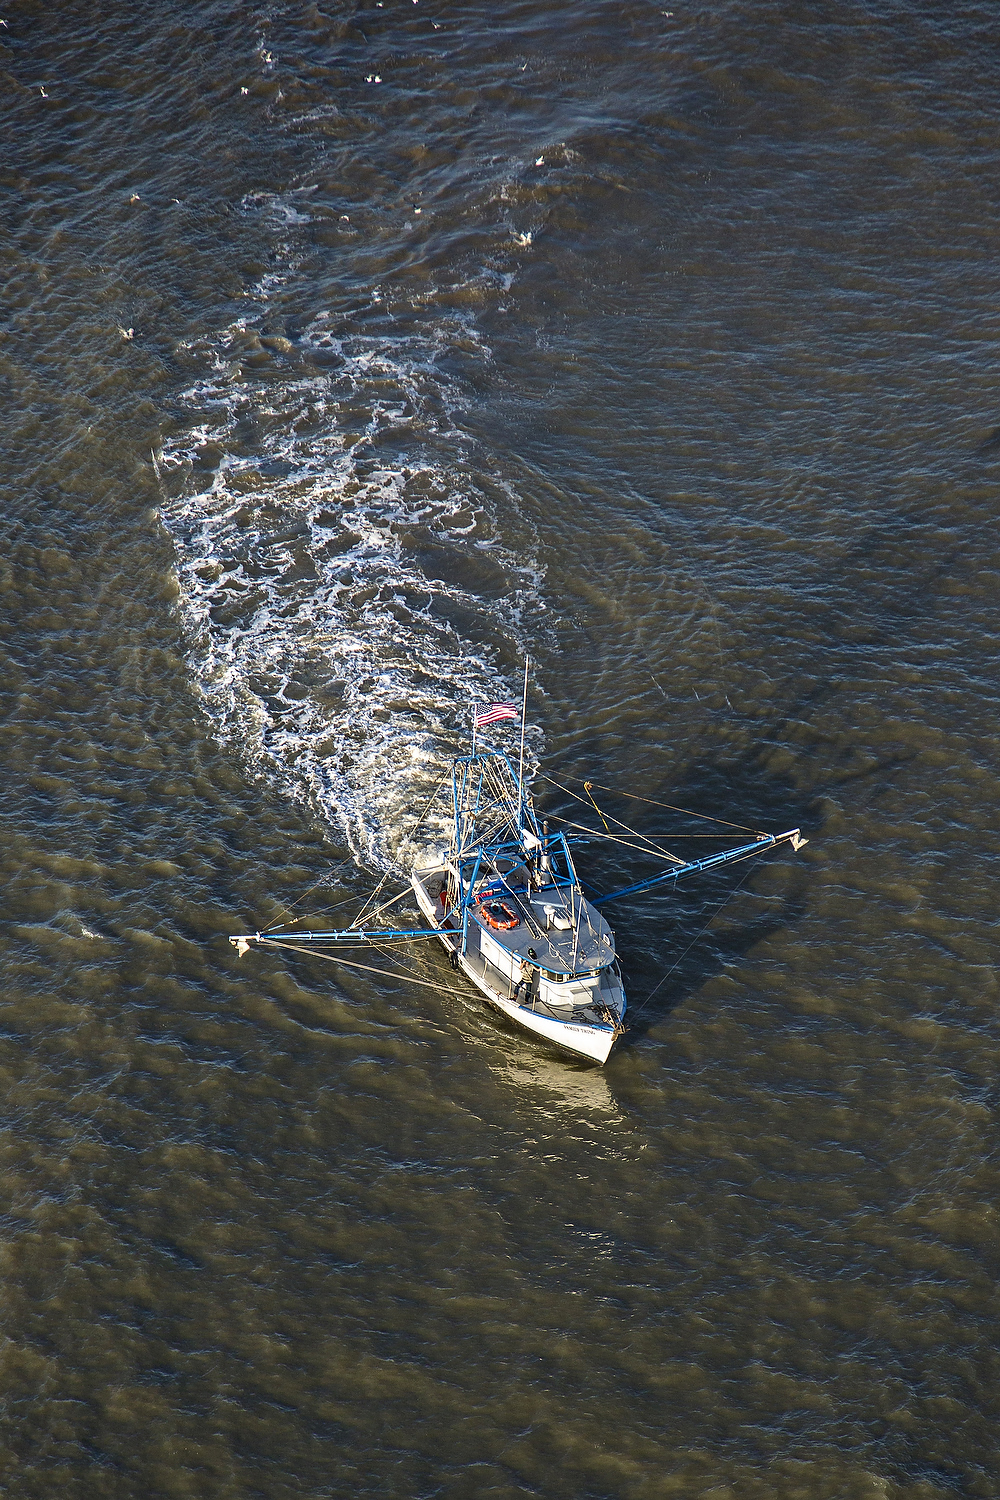 Aerial view of a shrimp boat fishing the waters off Charleston, South Carolina